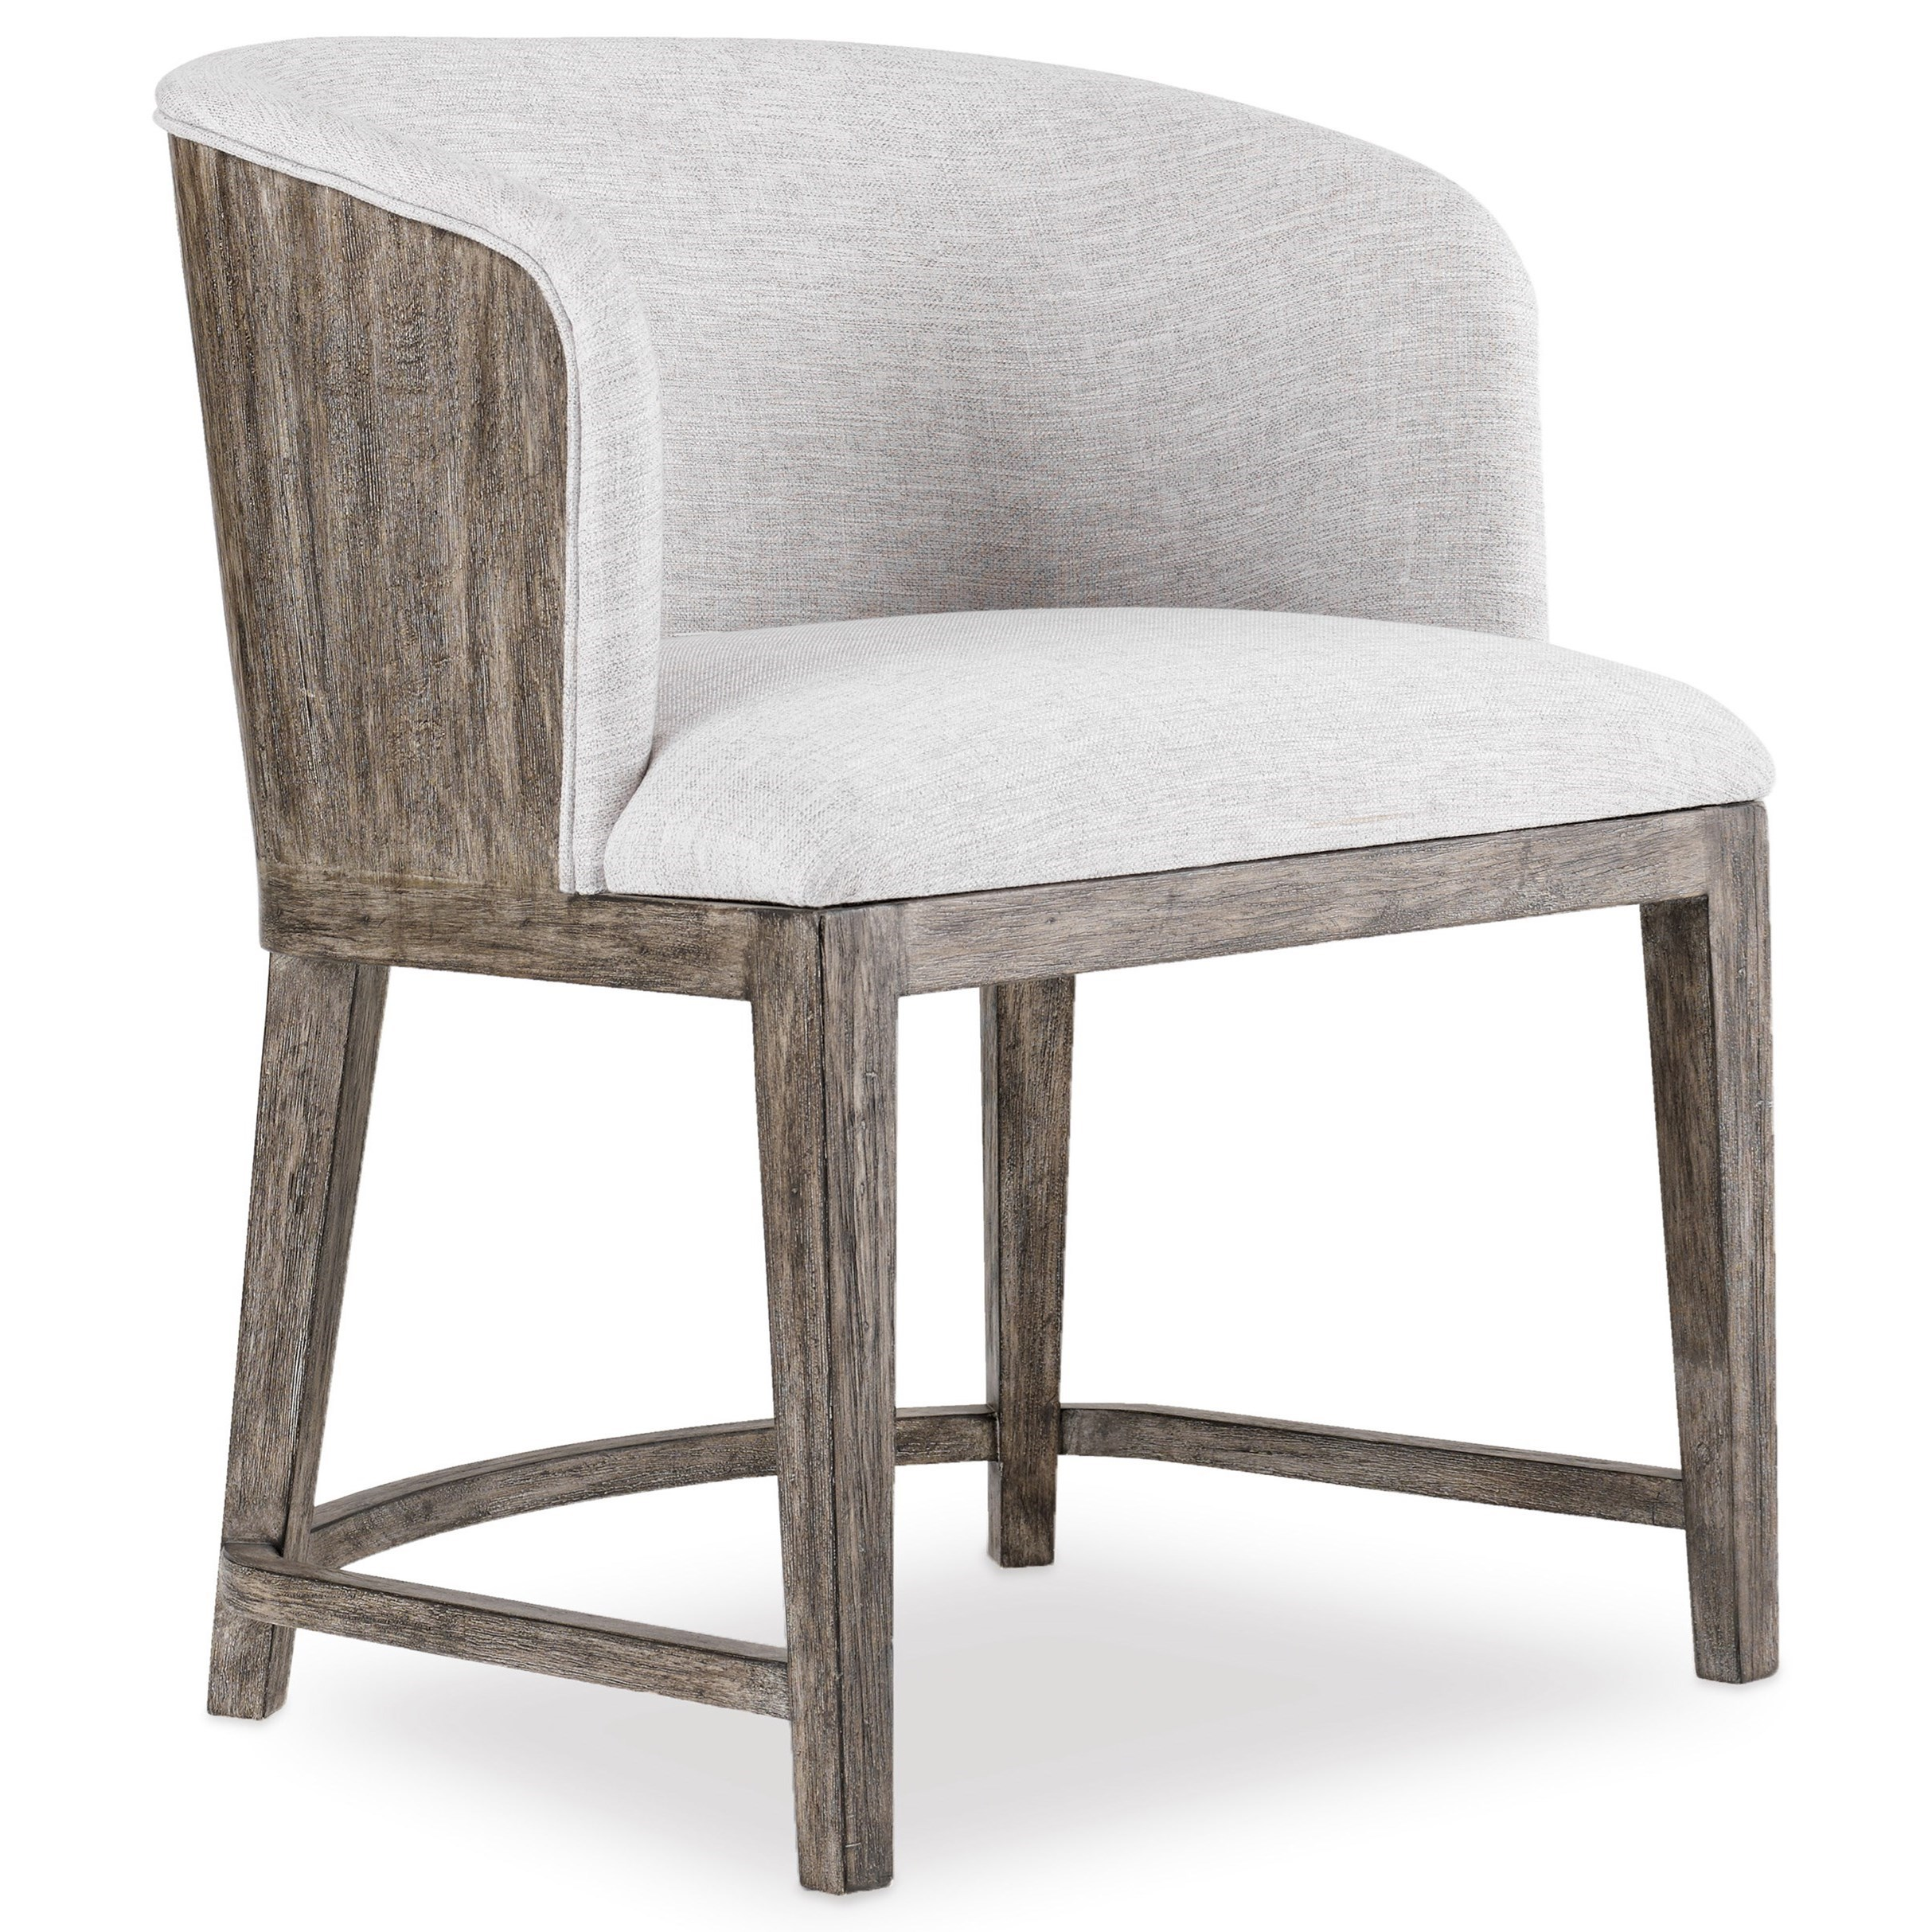 Curata Upholstered Chair with Wood Back by Hooker Furniture at Miller Waldrop Furniture and Decor